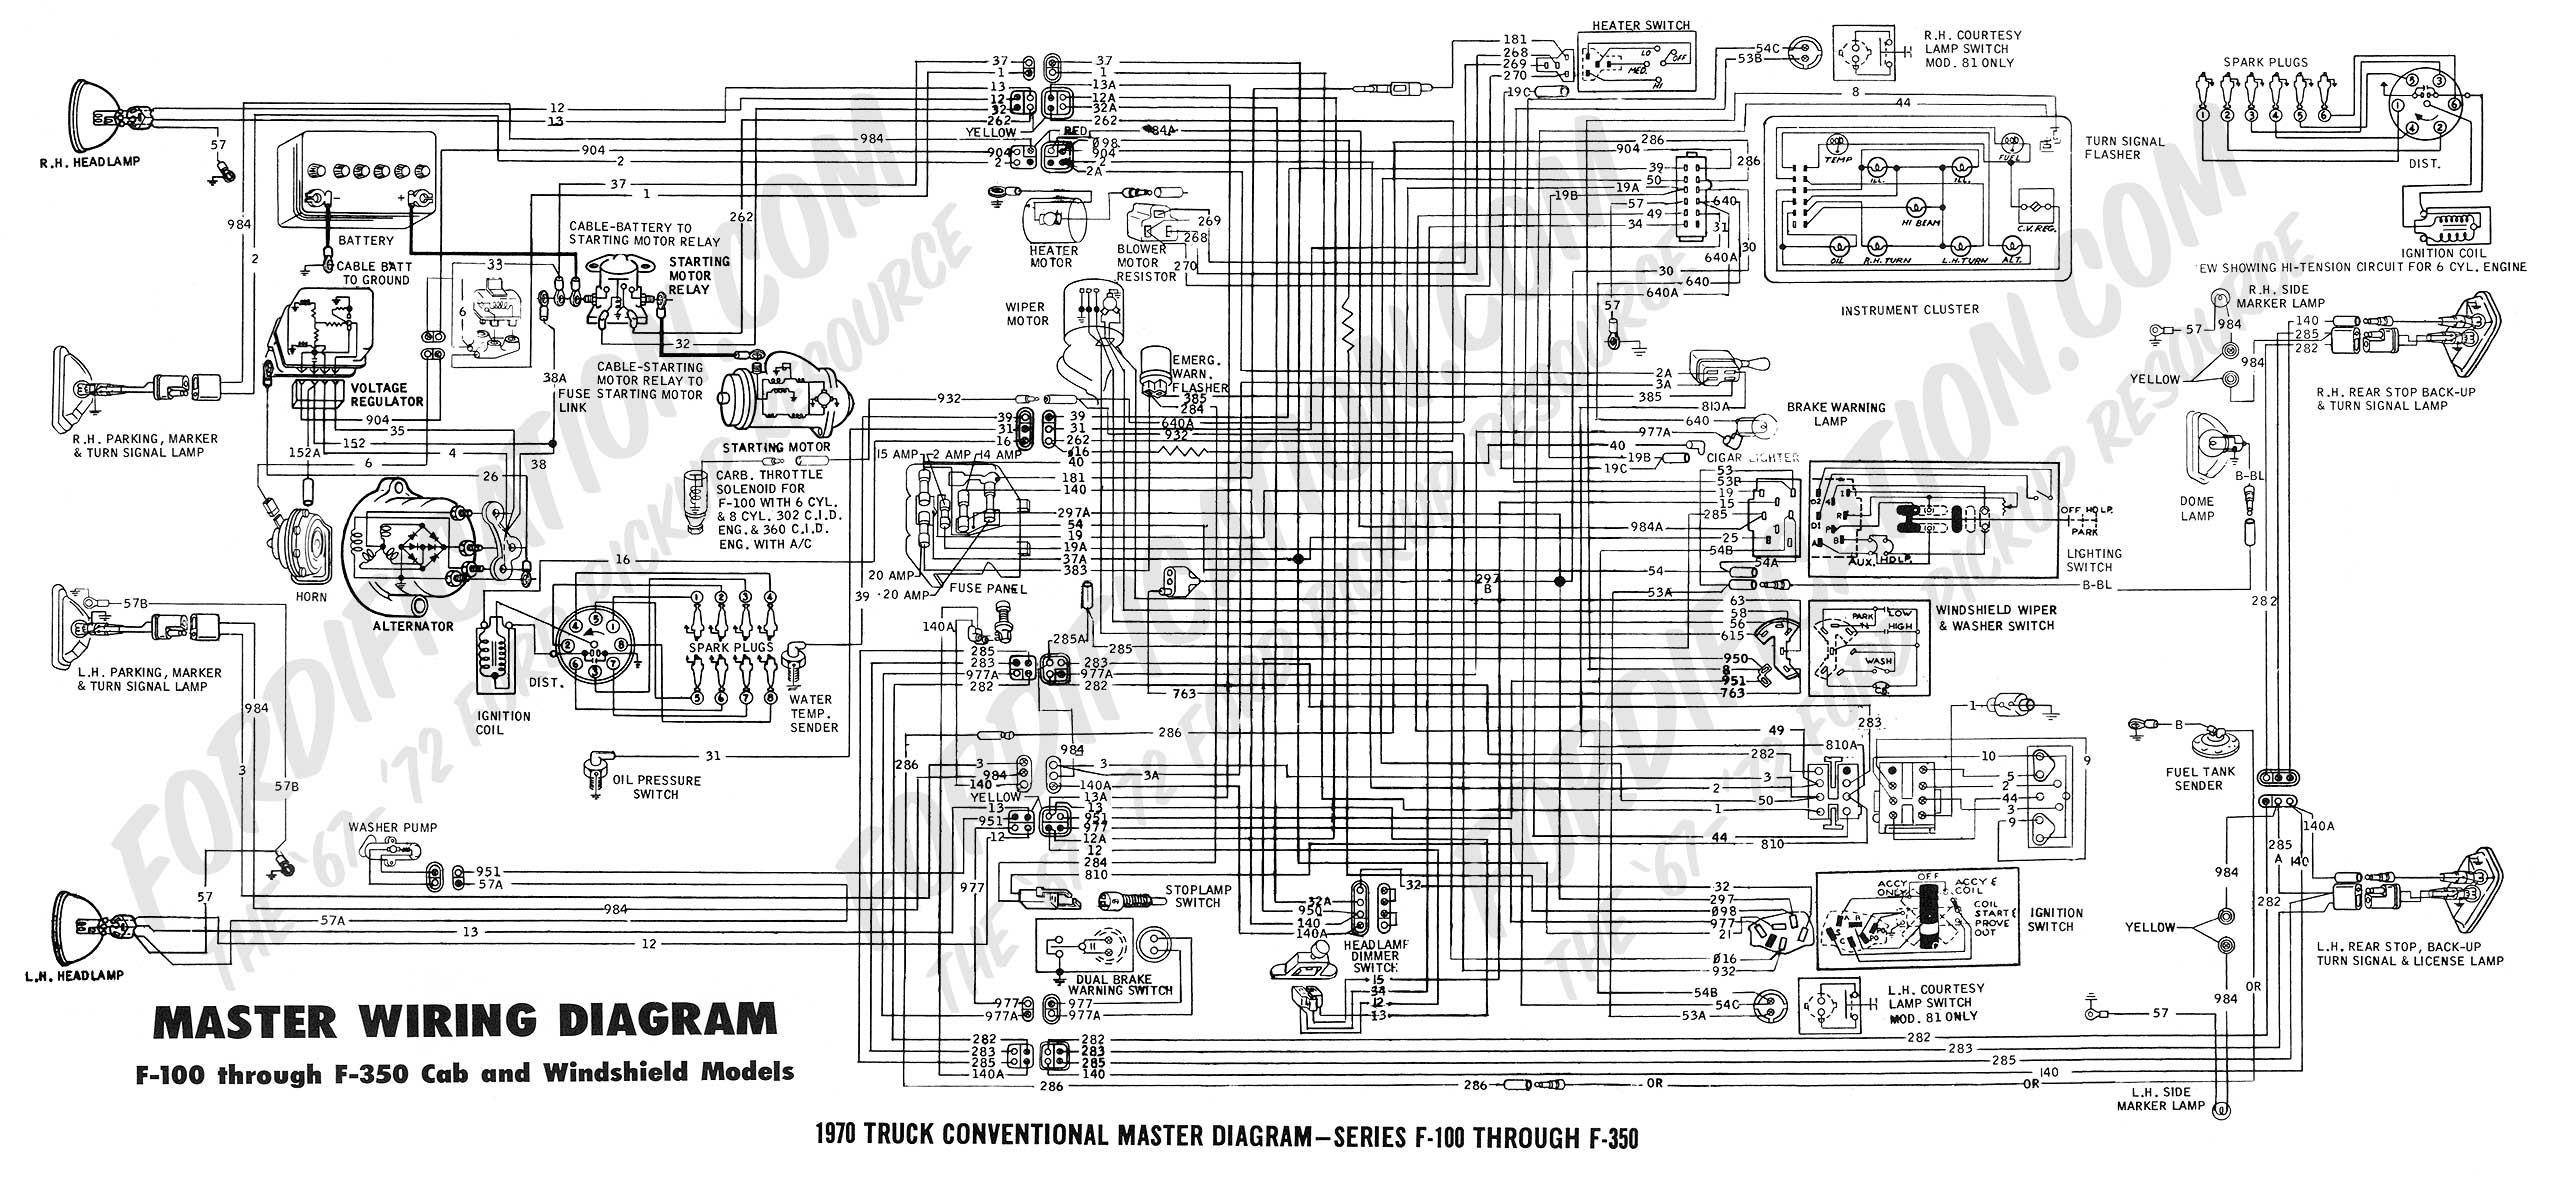 f100 wiring diagram f100 image wiring diagram ford truck technical drawings and schematics section h wiring on f100 wiring diagram